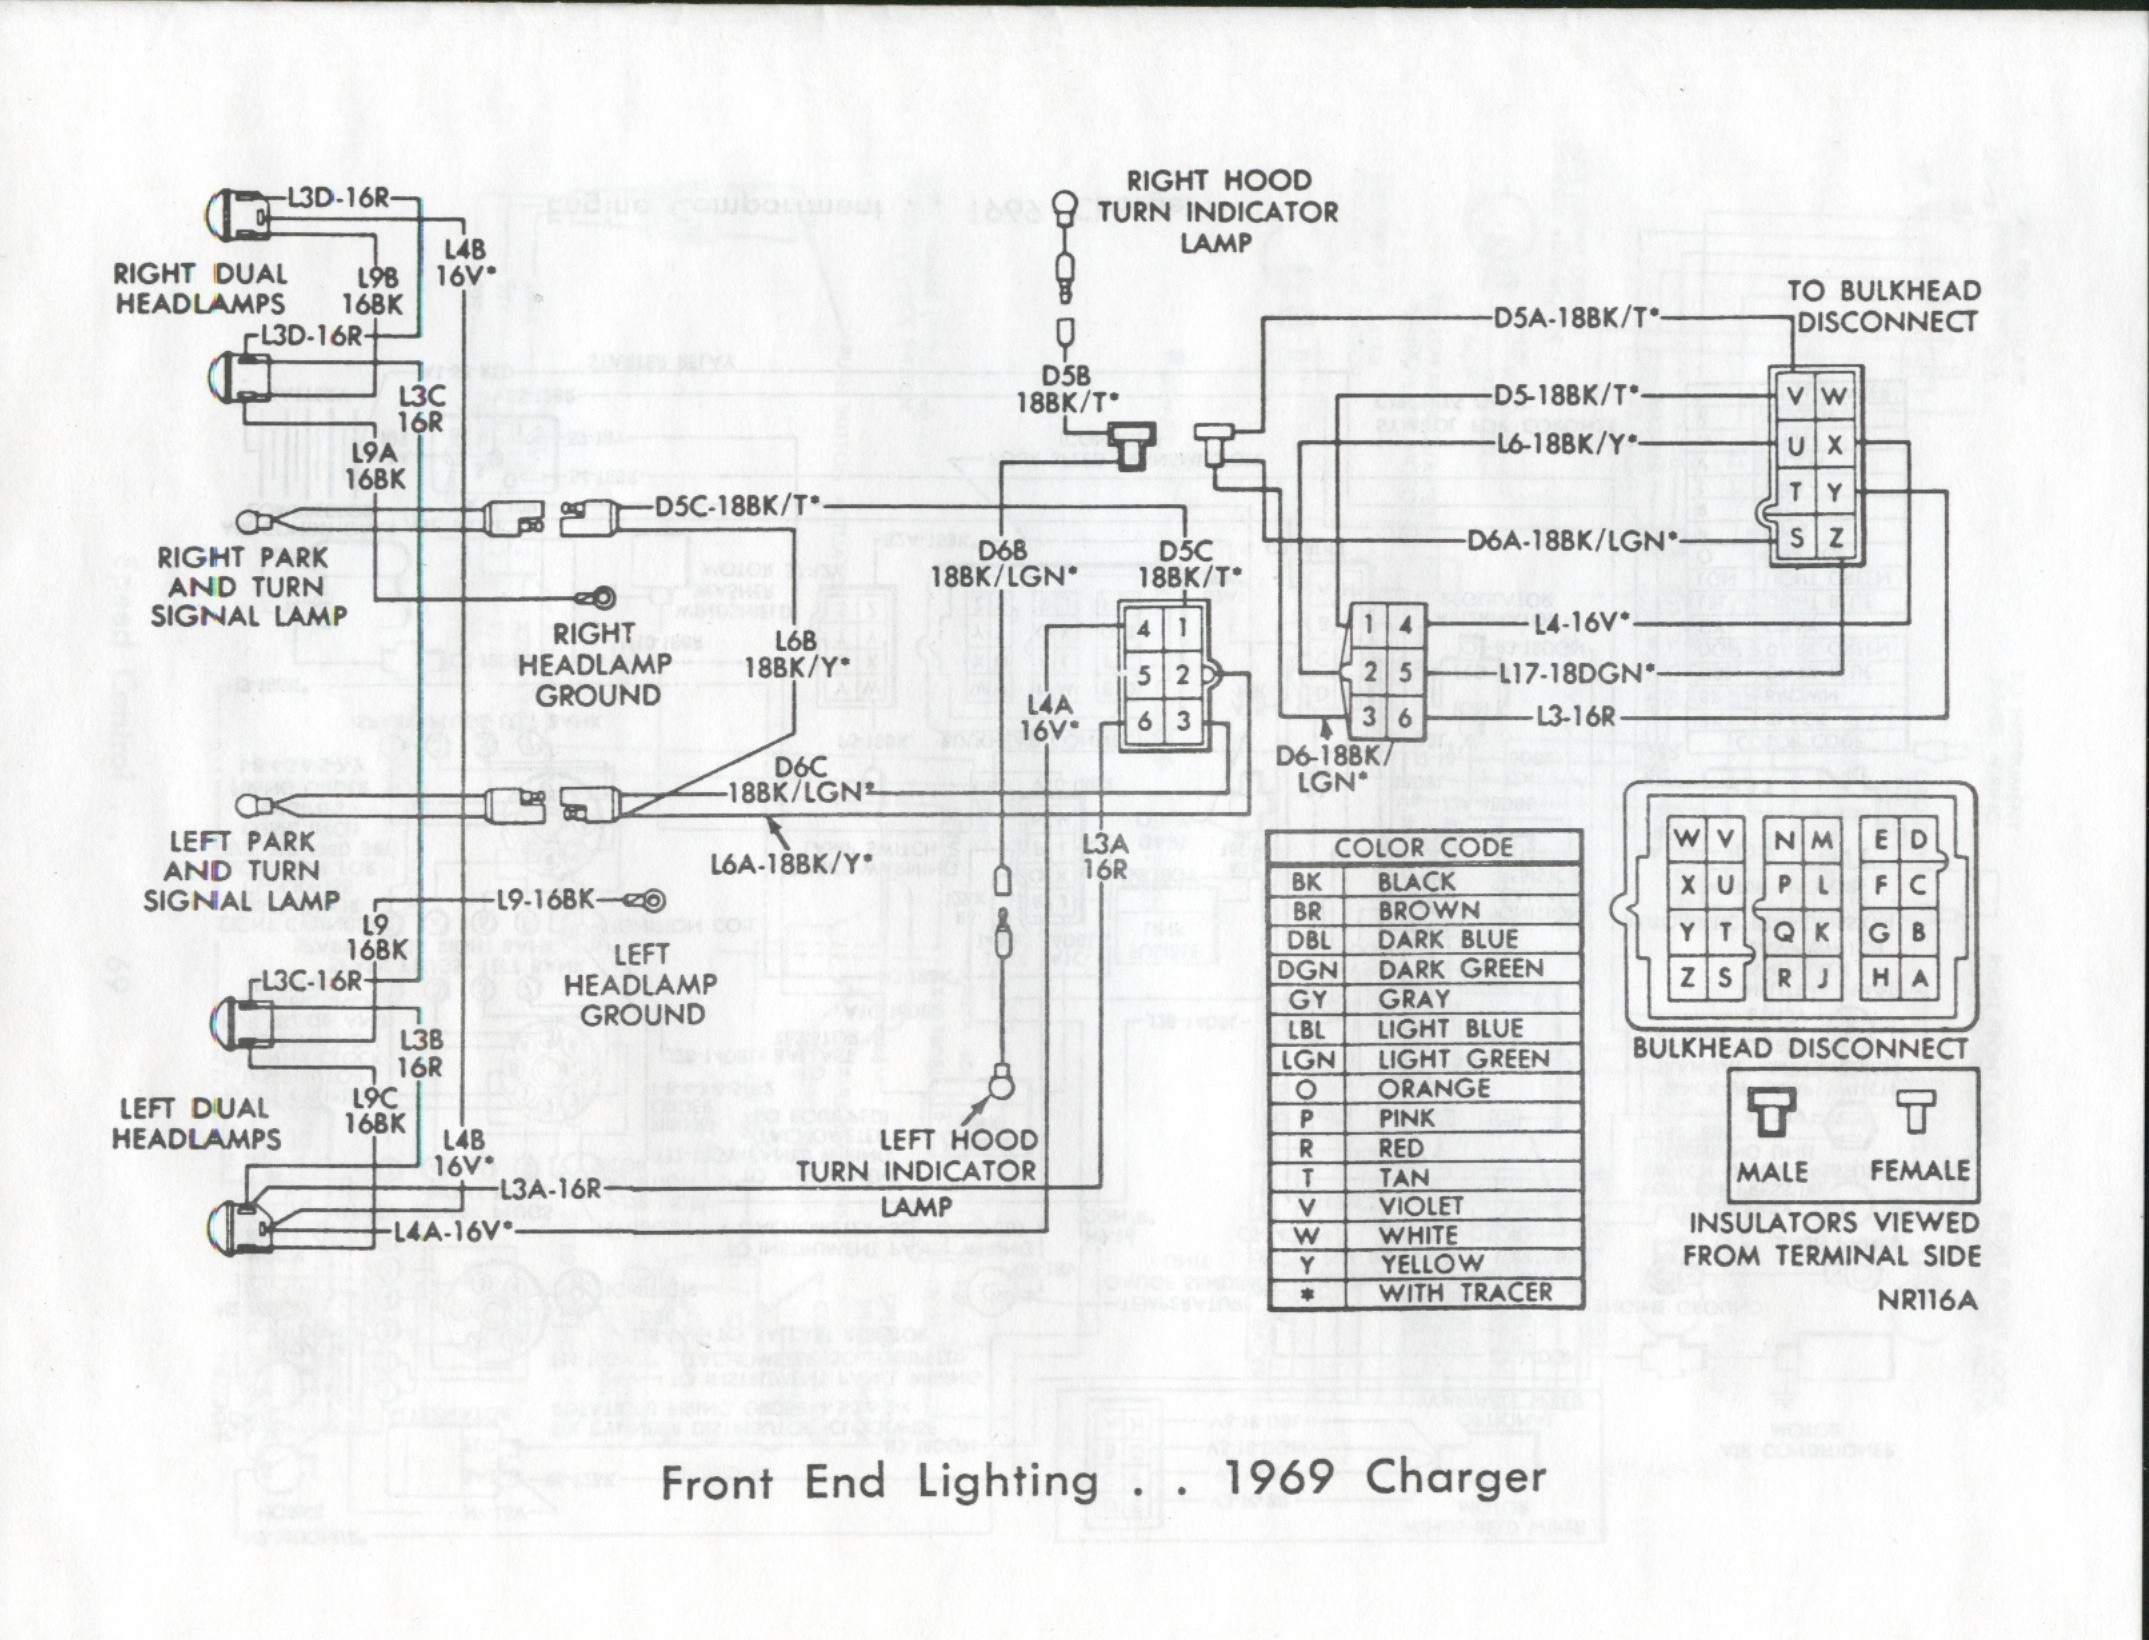 72 Dodge Charger Wiring Diagram